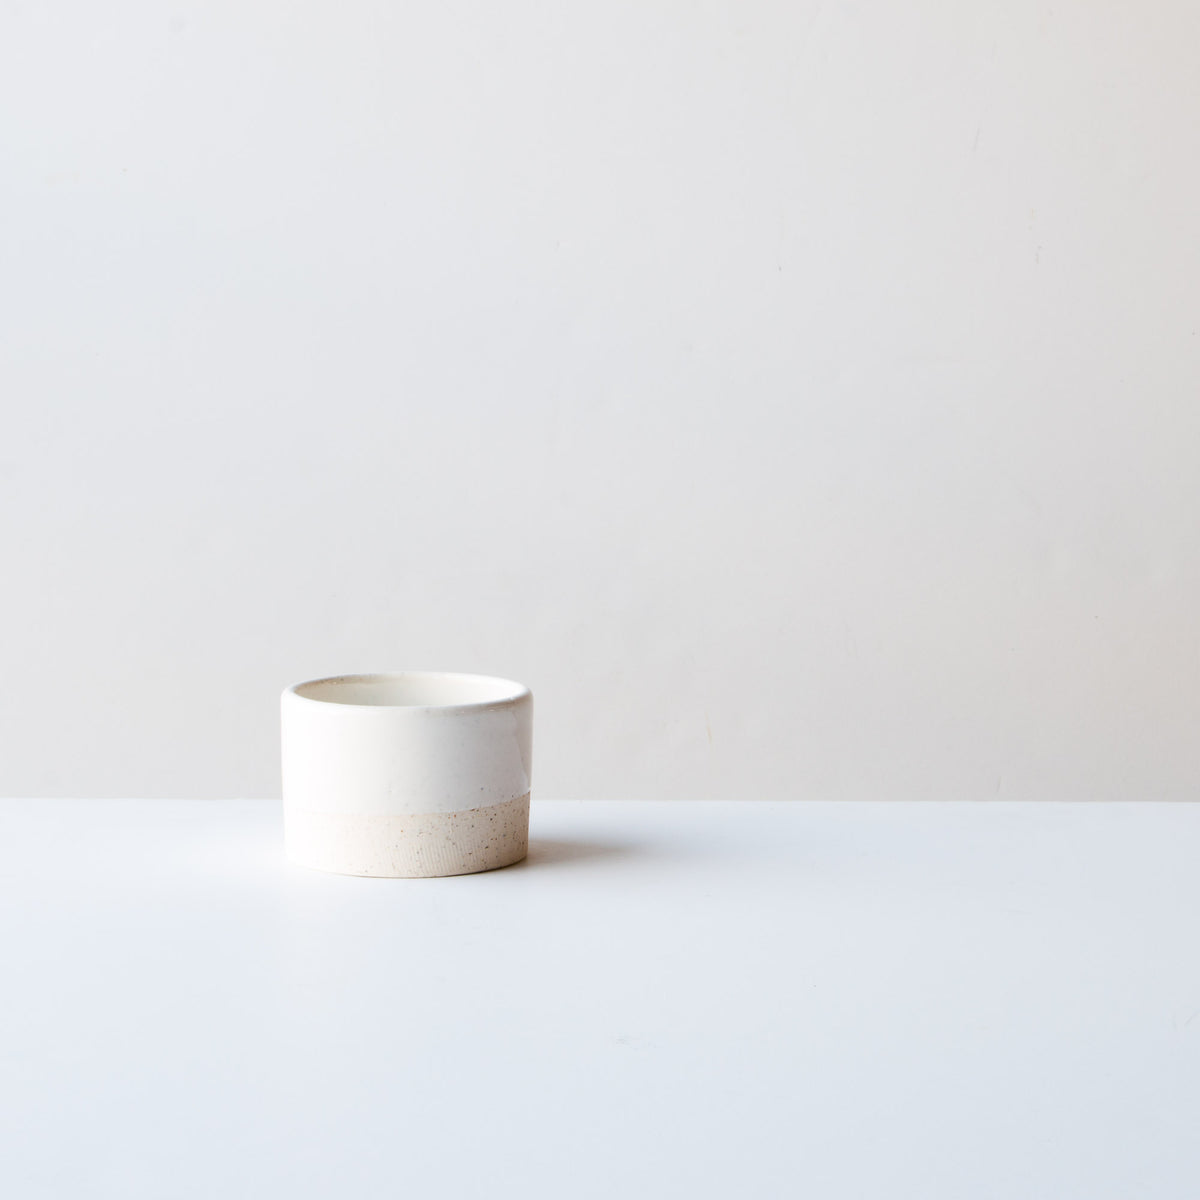 Oatmeal Clay - Soft White Glaze - 6 oz / 200 ml Handmade Ceramic Ramekin - Made in Canada - Shop Online